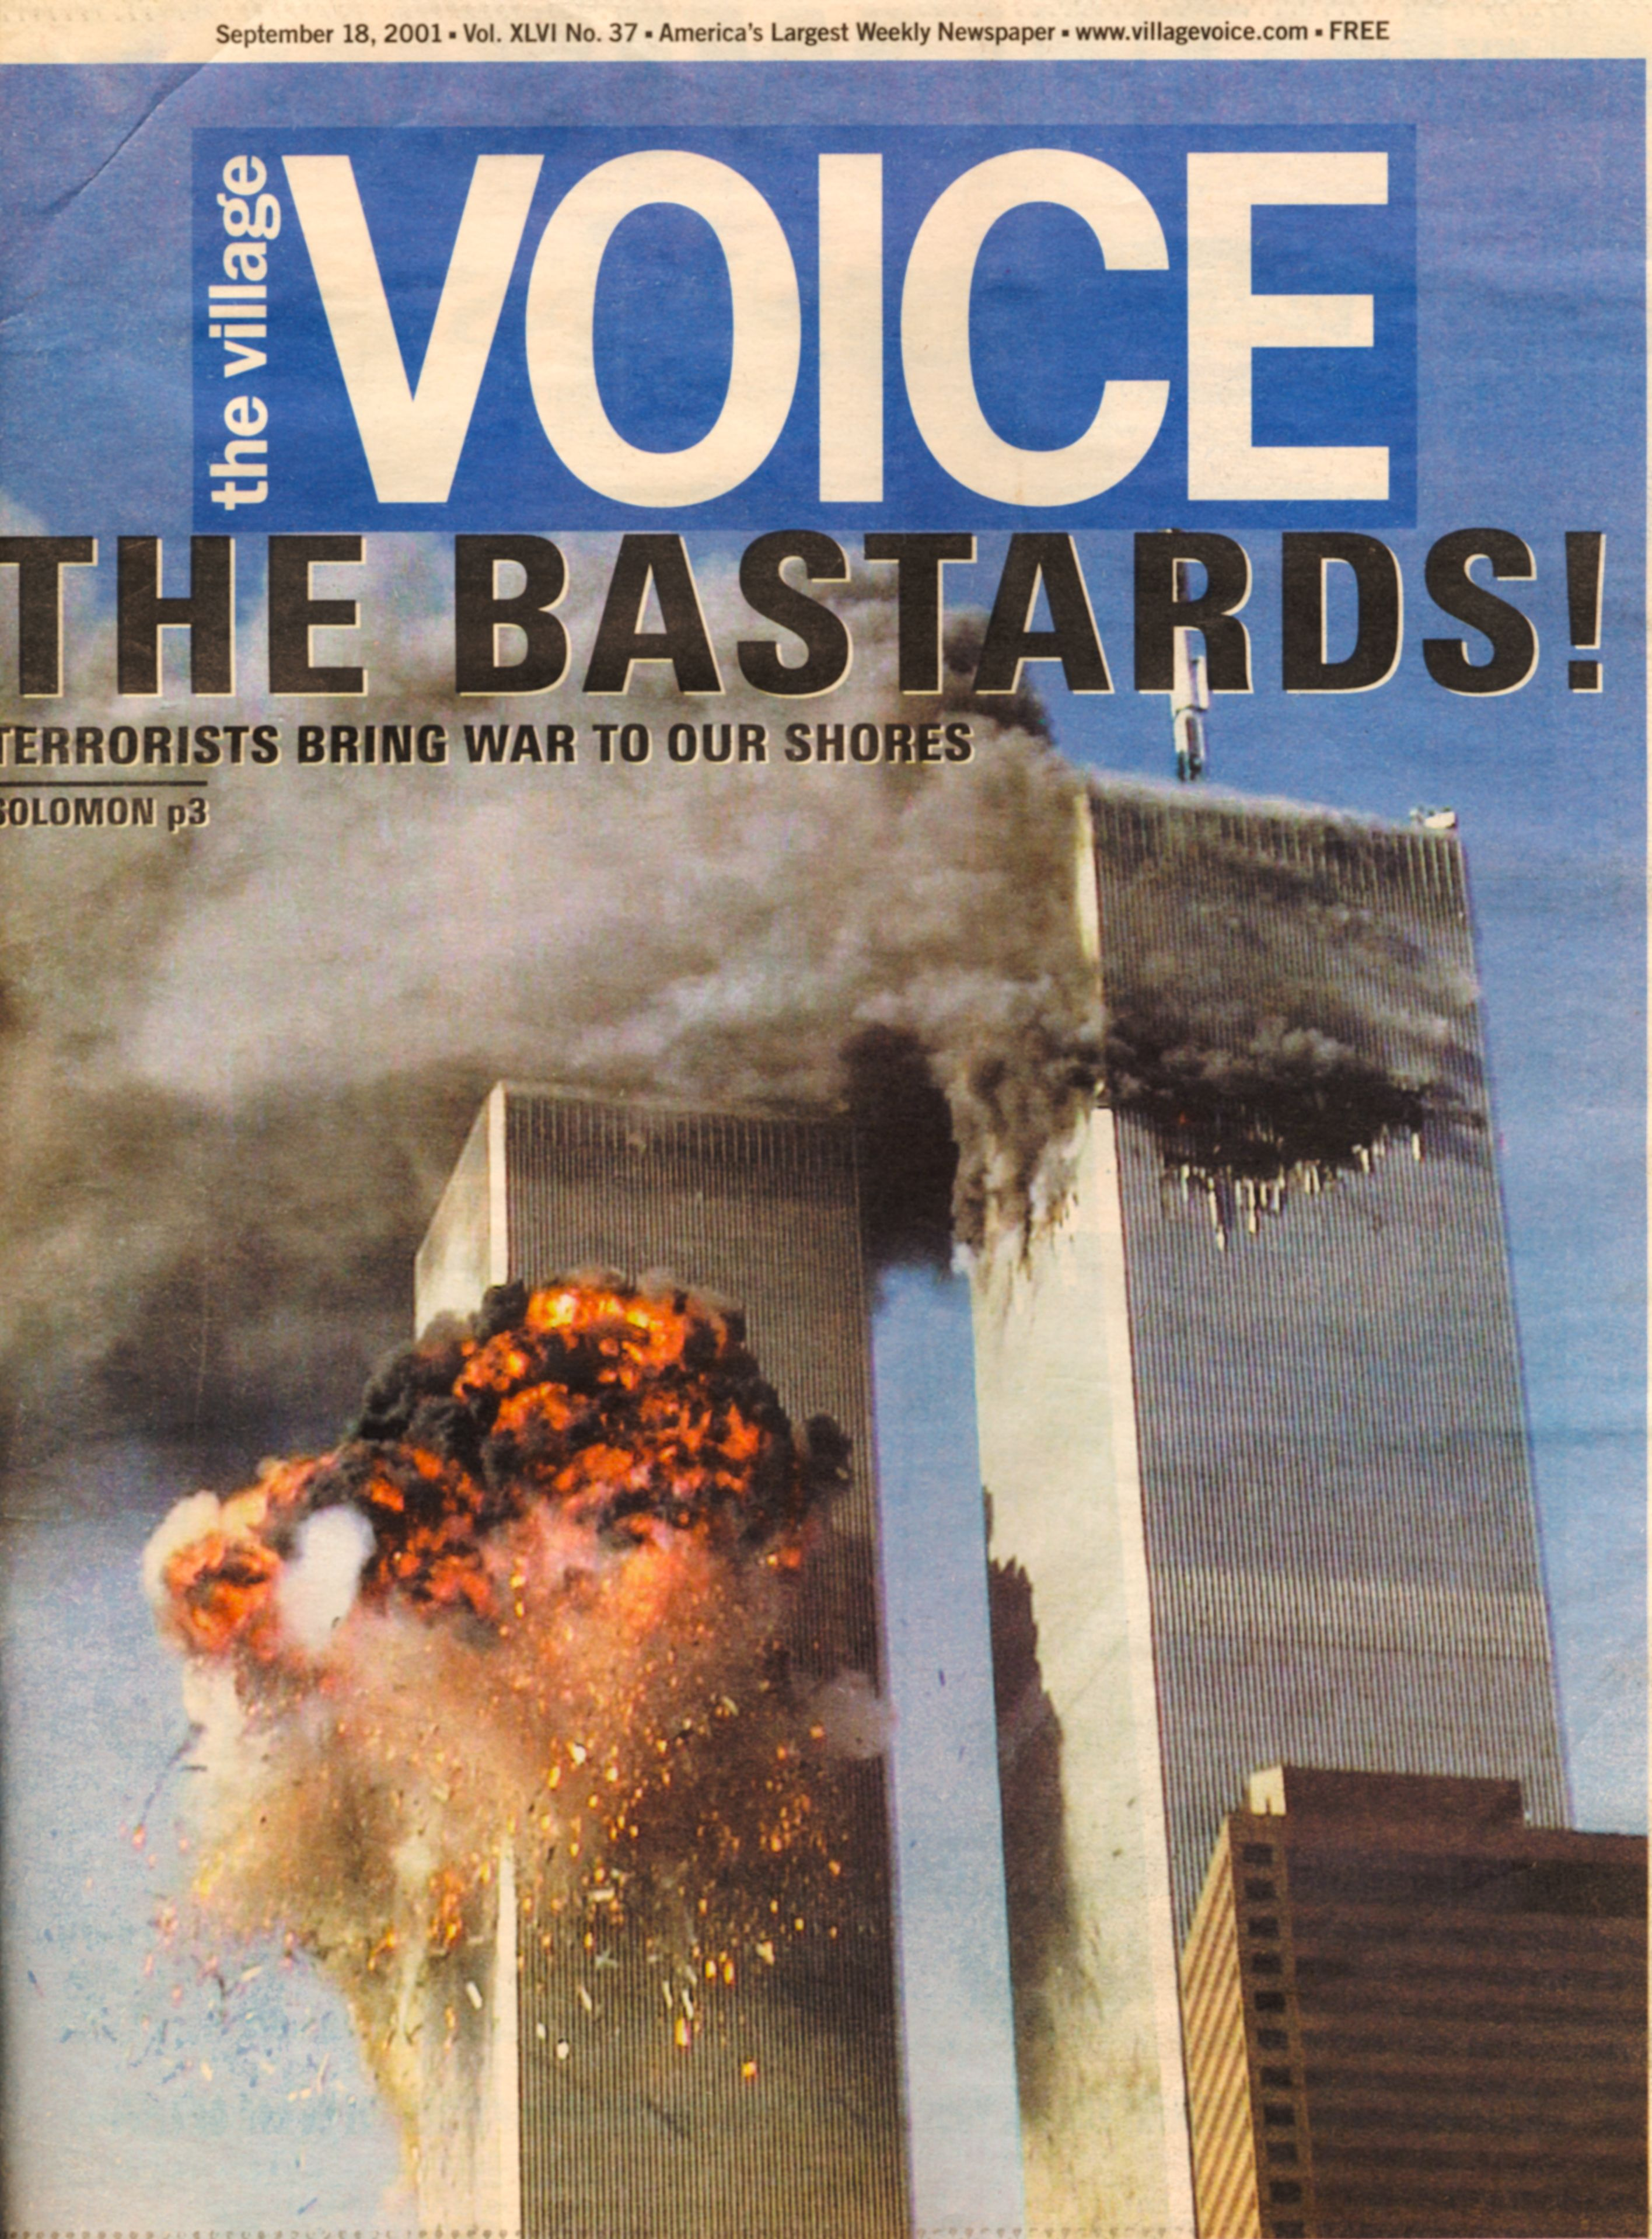 The Village Voice cover in the wake of September 11th